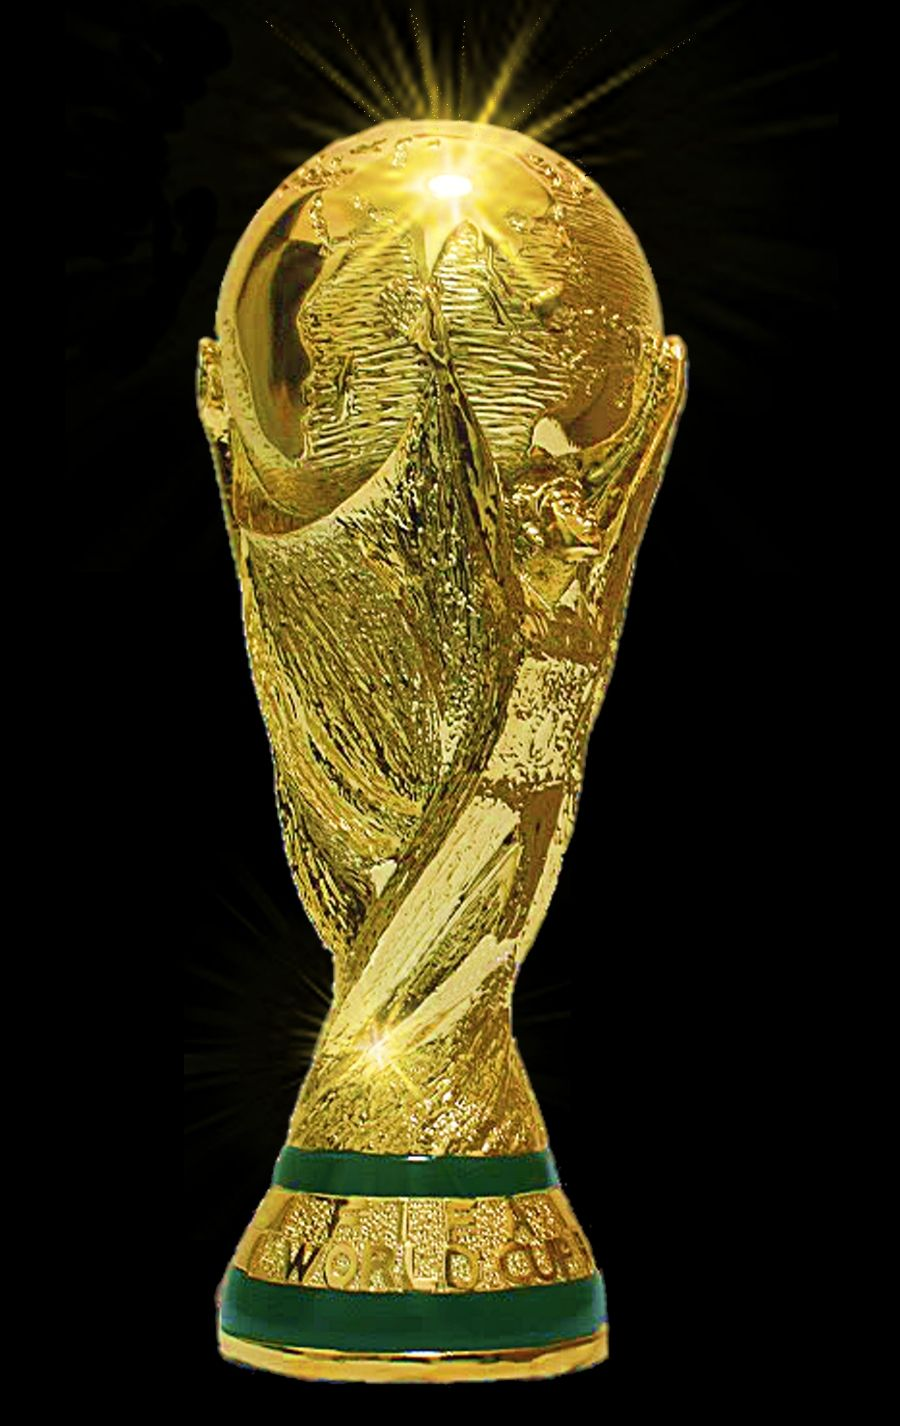 Pin By Gitanjaliawards Pvt Ltd On Favourite Sports Trophies World Cup Trophy World Cup Fifa World Cup